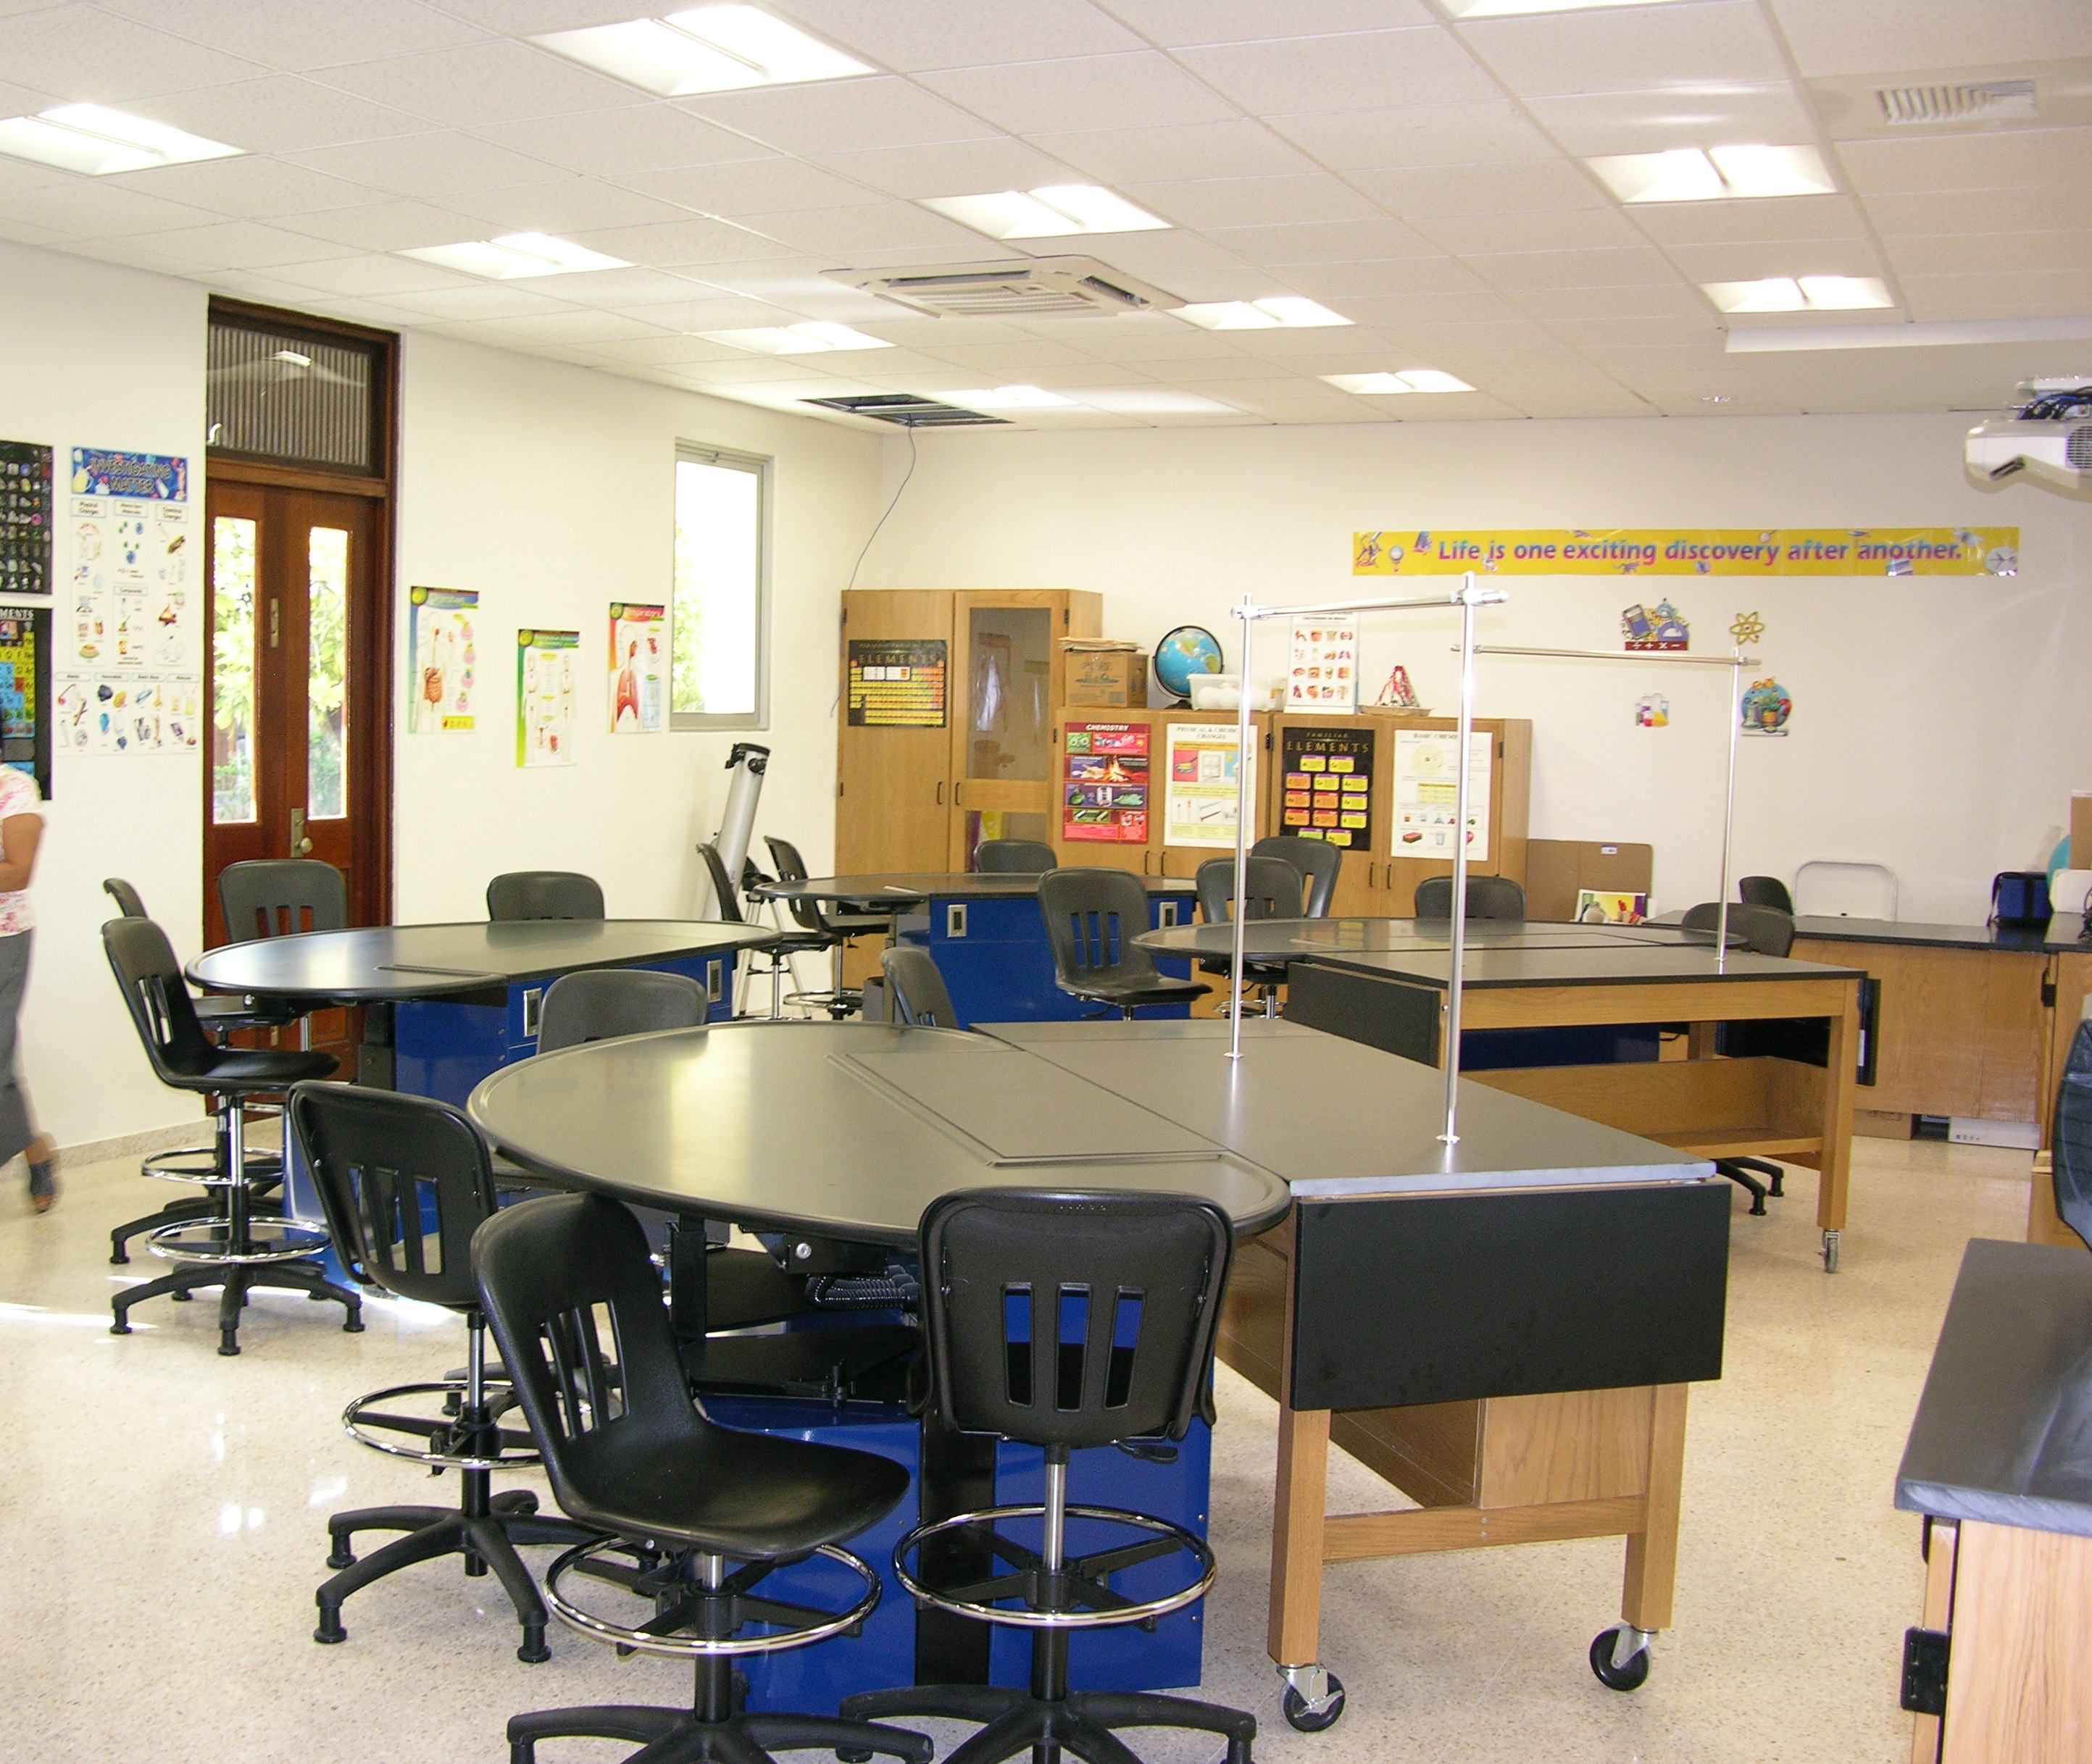 Furniture Equipment Provided By Sheldon Labs To Robinson School Included